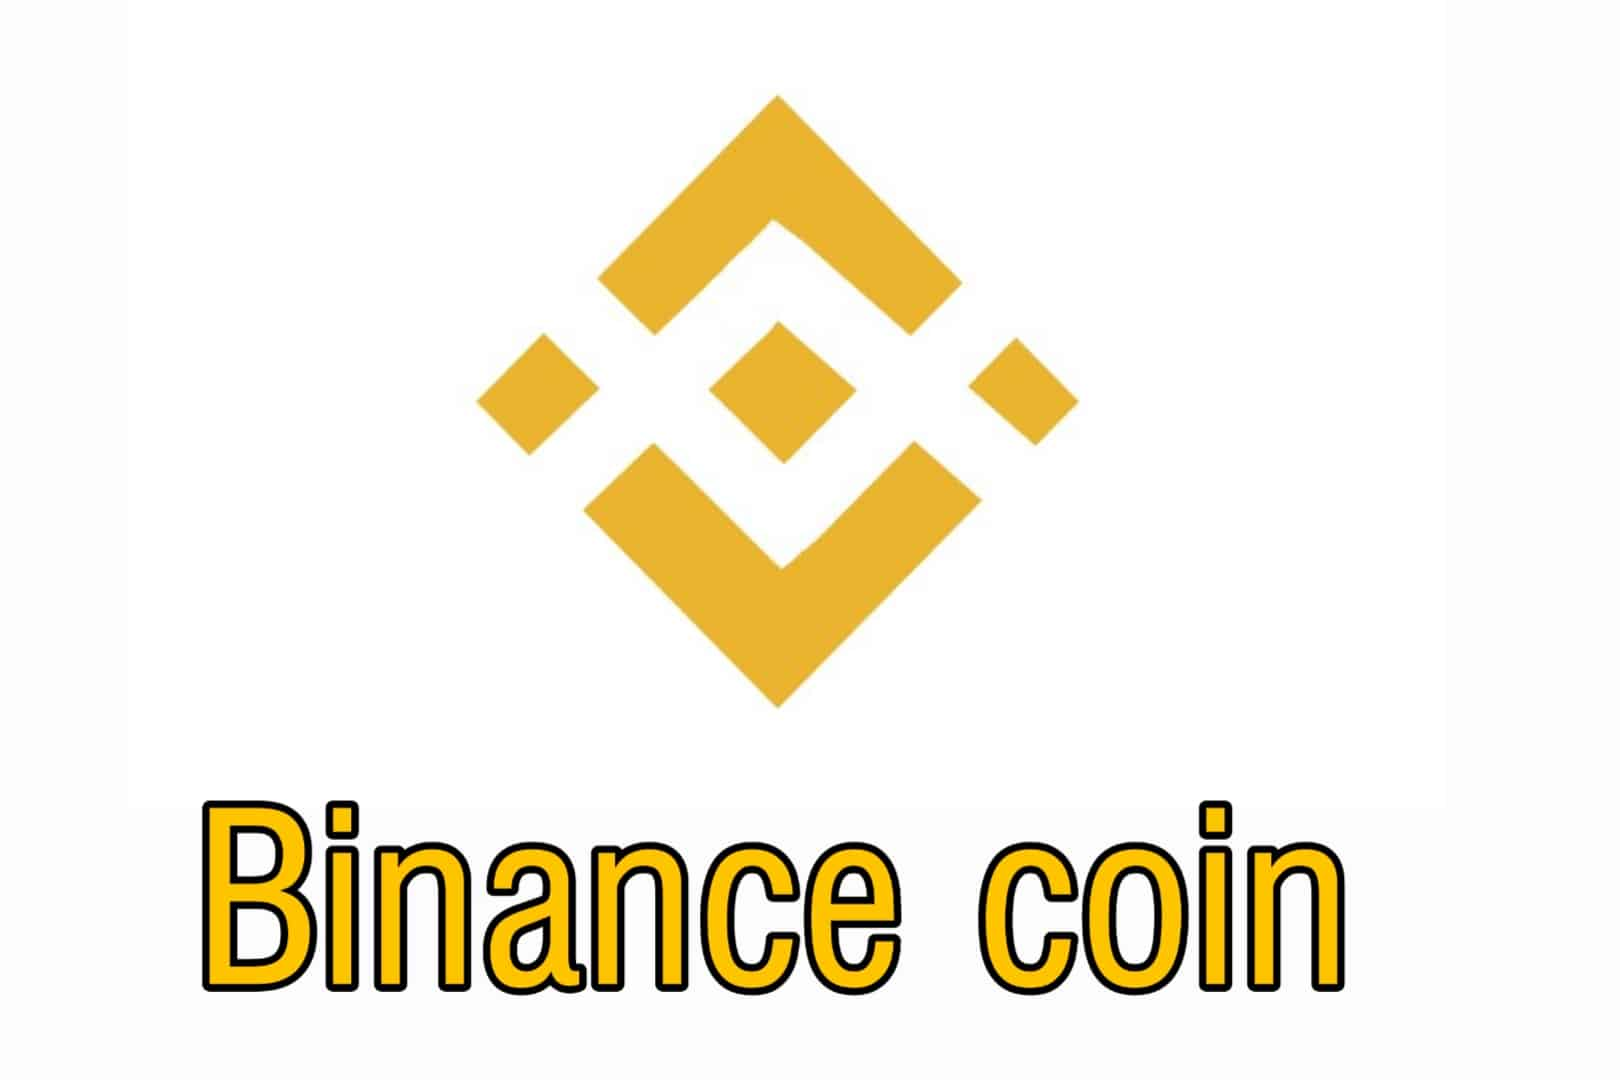 how many cryptocurrencies are there - Binance coin